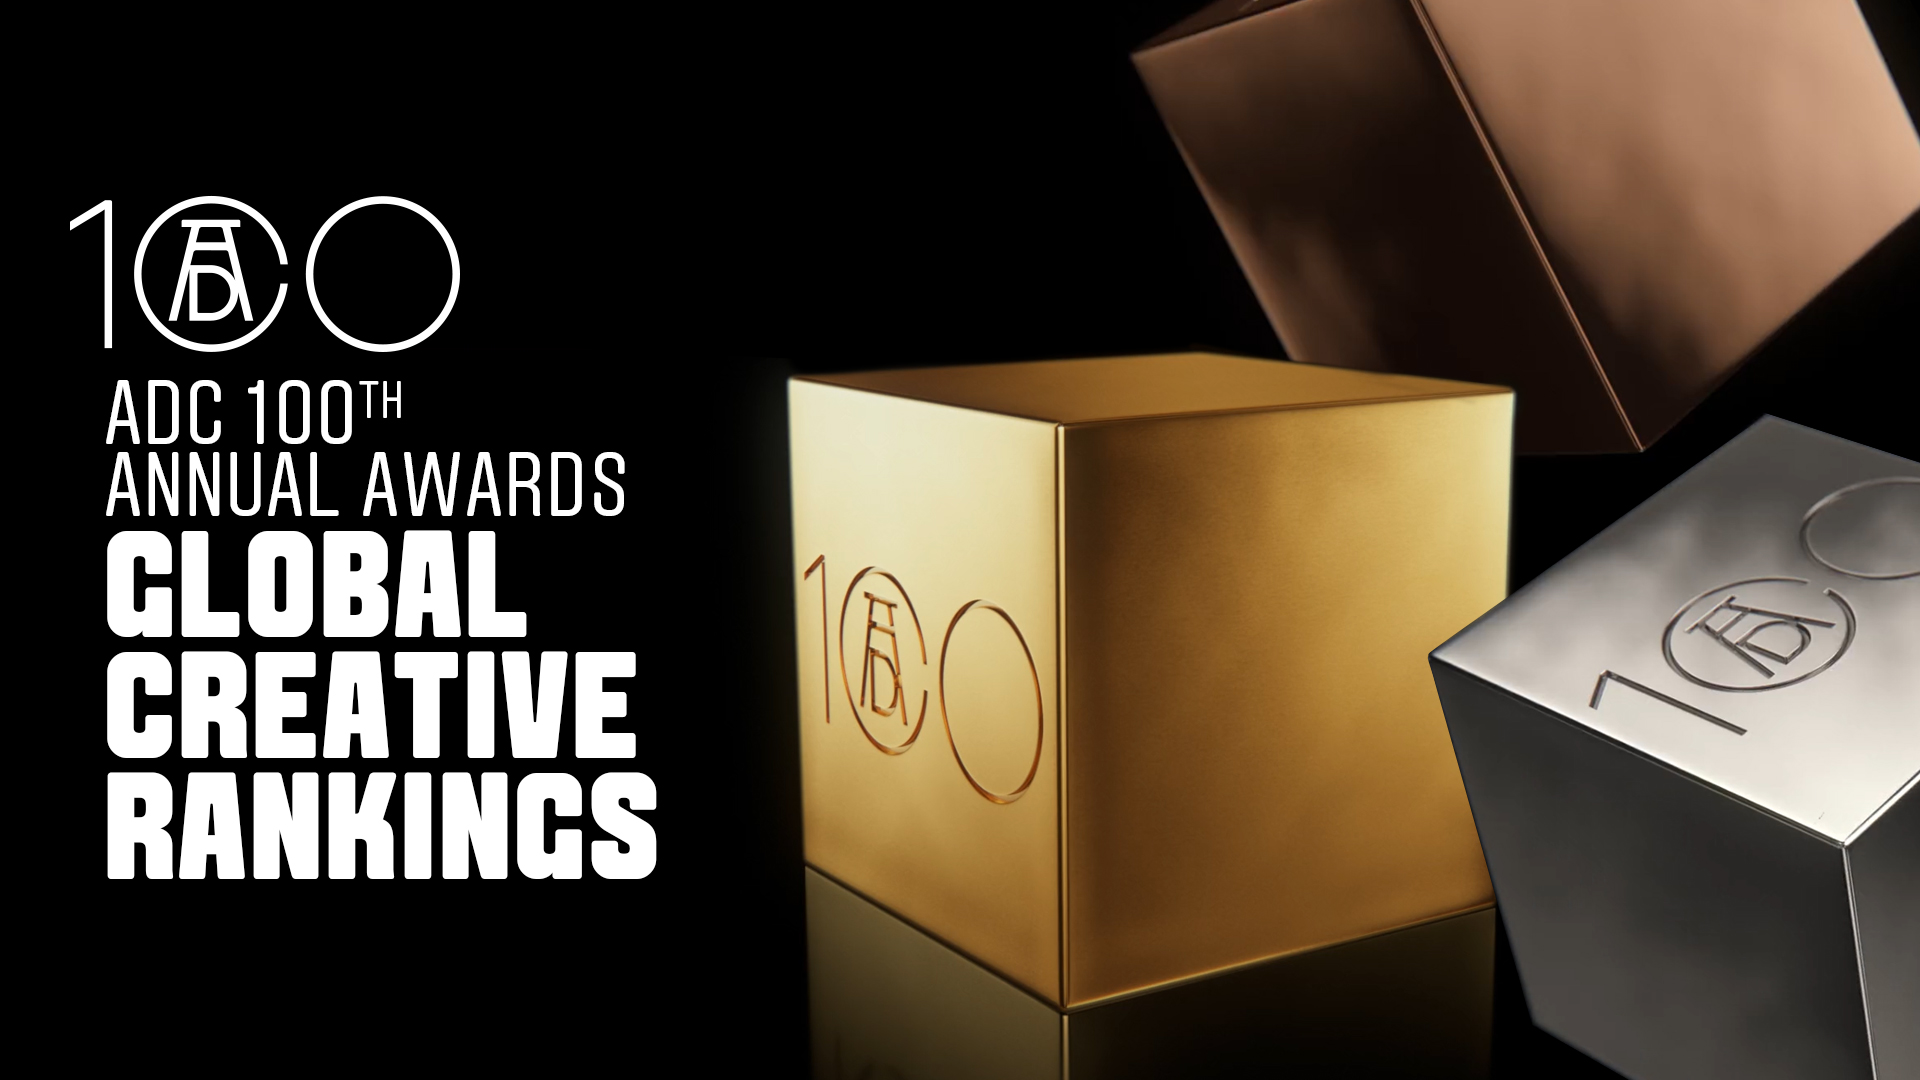 DDB Group Germany is World's Top-Ranked Agency In ADC 100th Annual Awards Global Creative Rankings